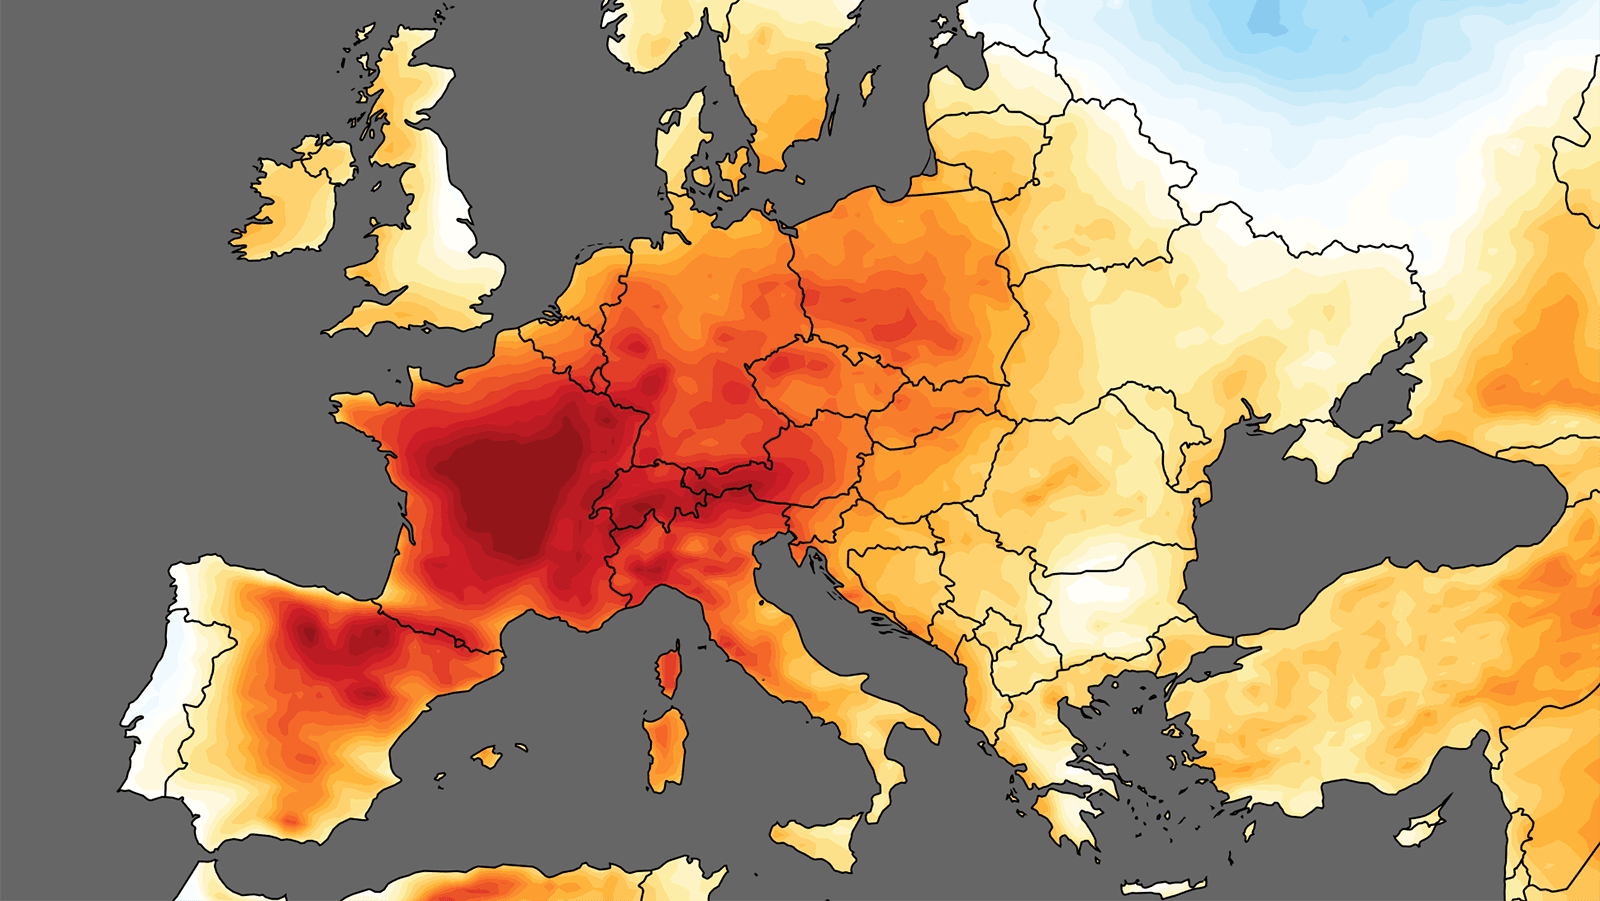 cropped map era5 daily t2m anom europe 25 29 Jun 2019 land only copia 1